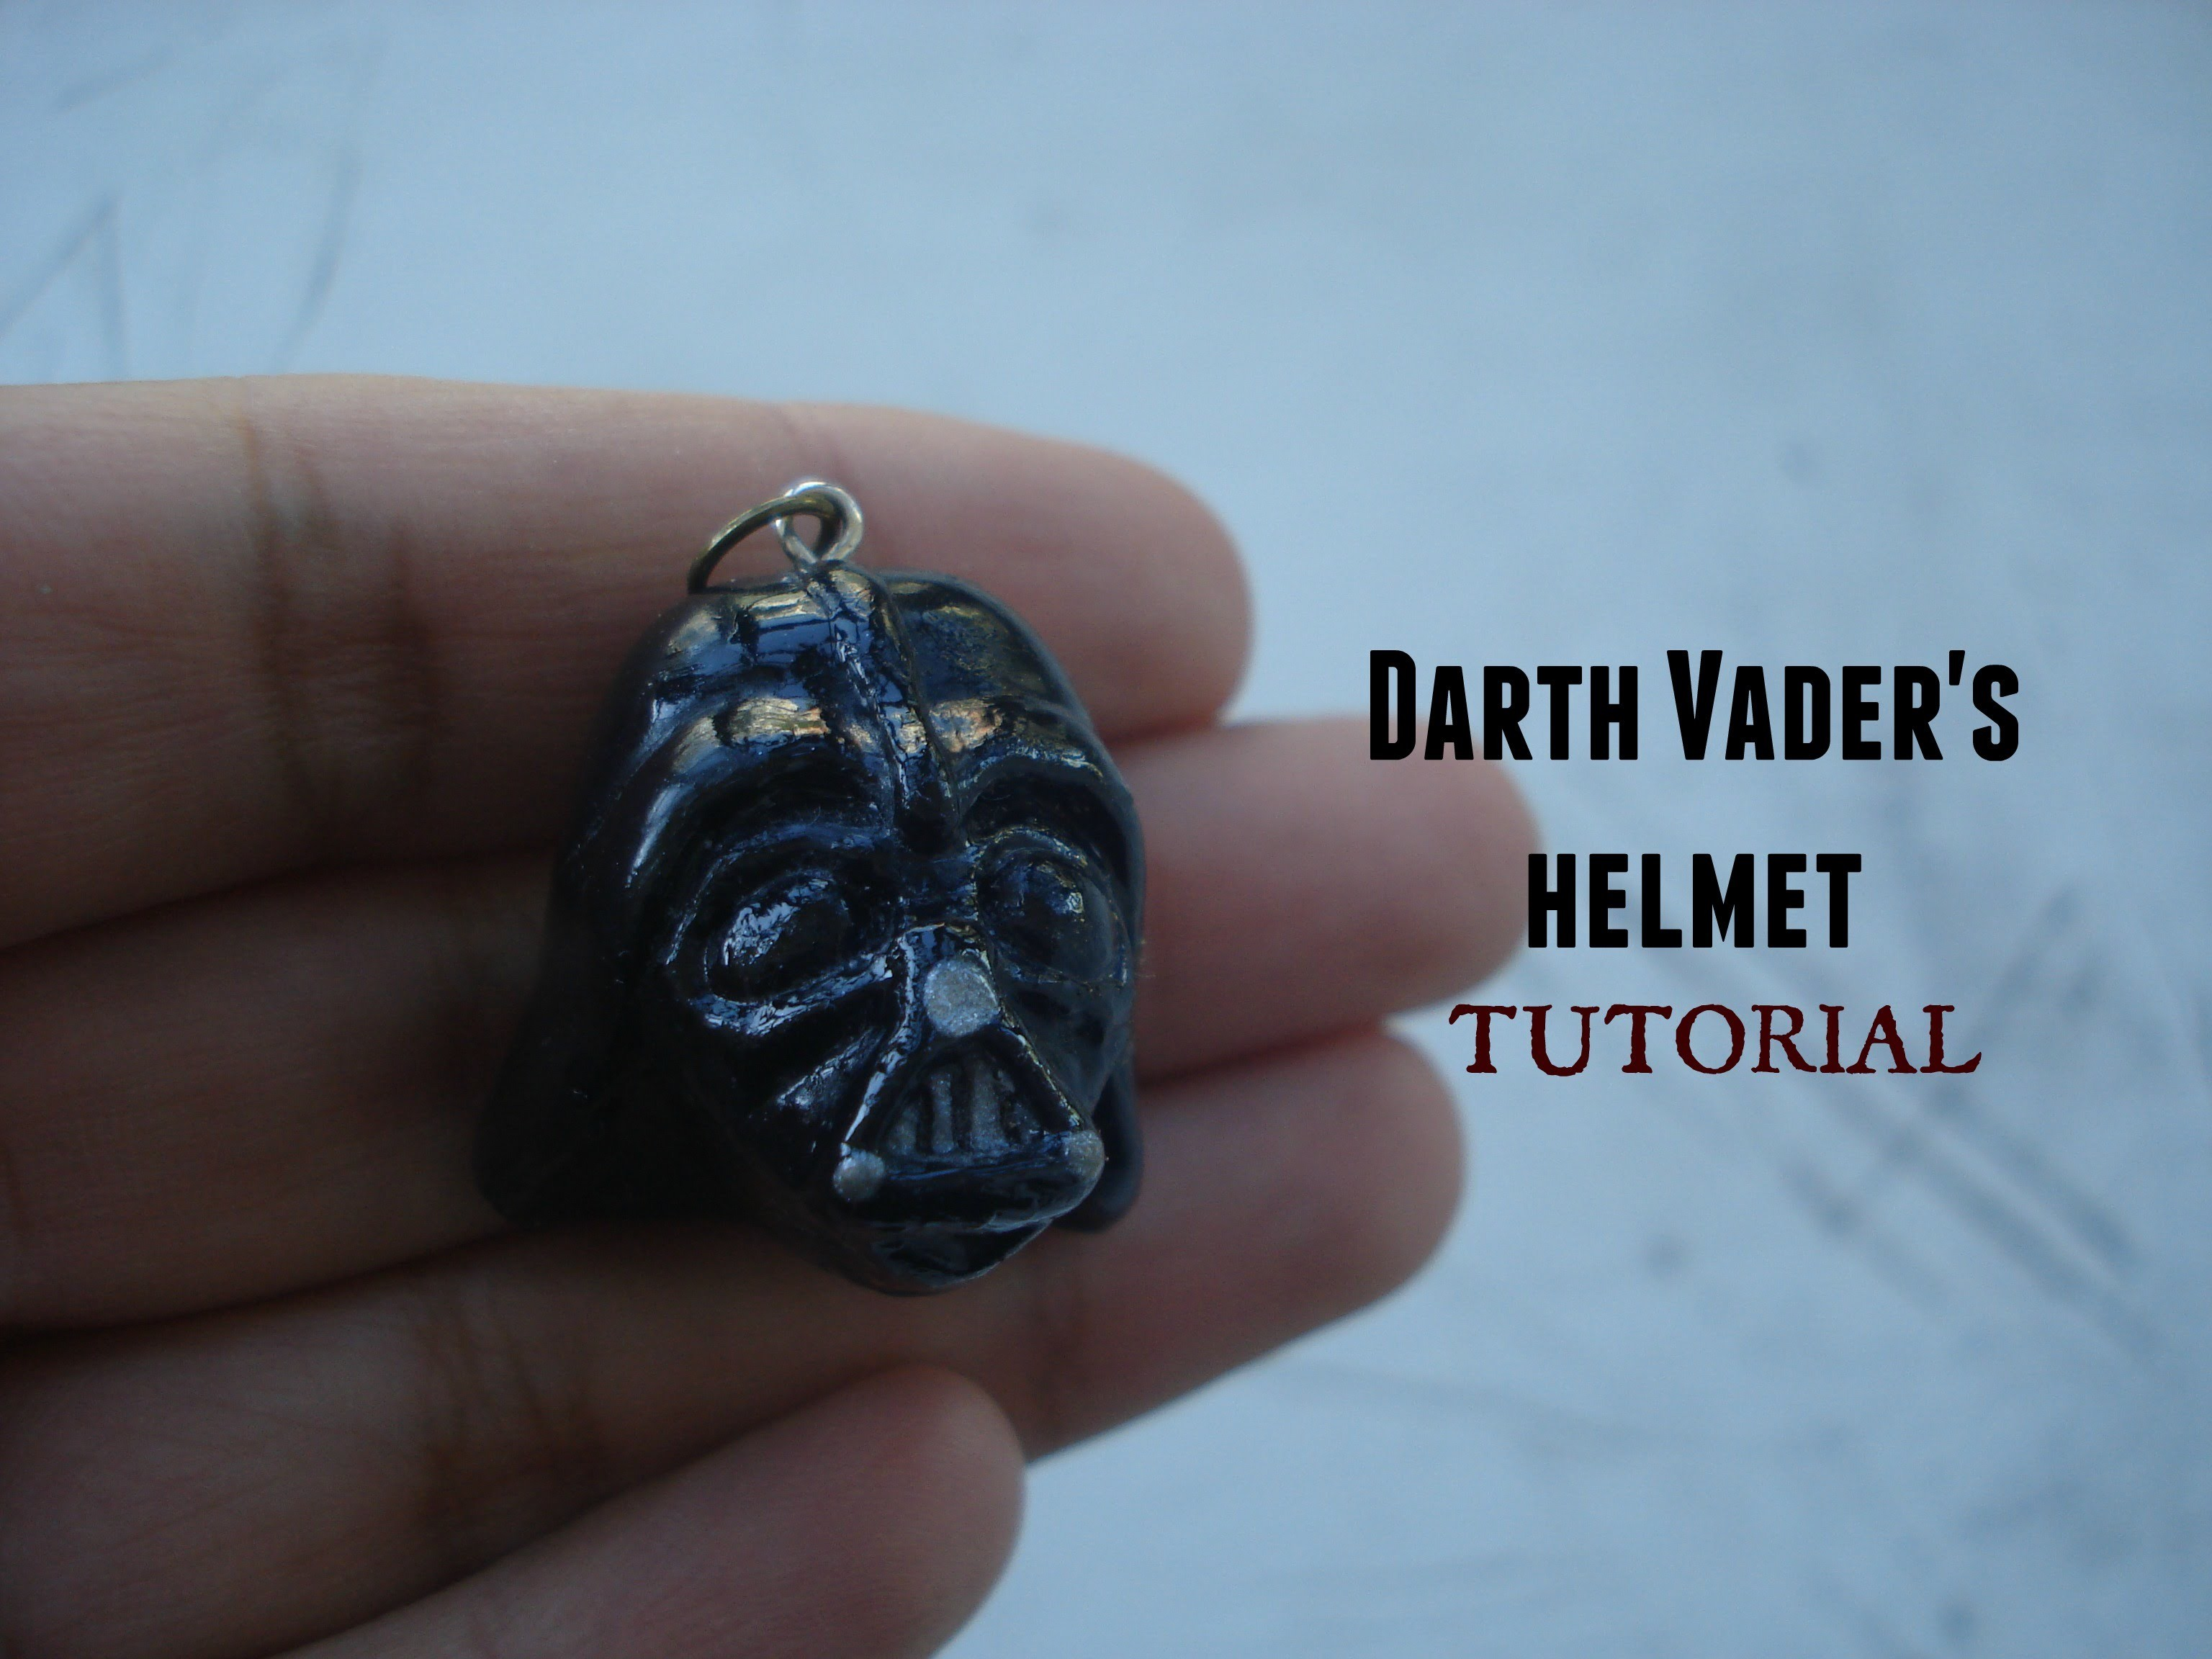 Darth Vader's helmet tutorial. polymer clay